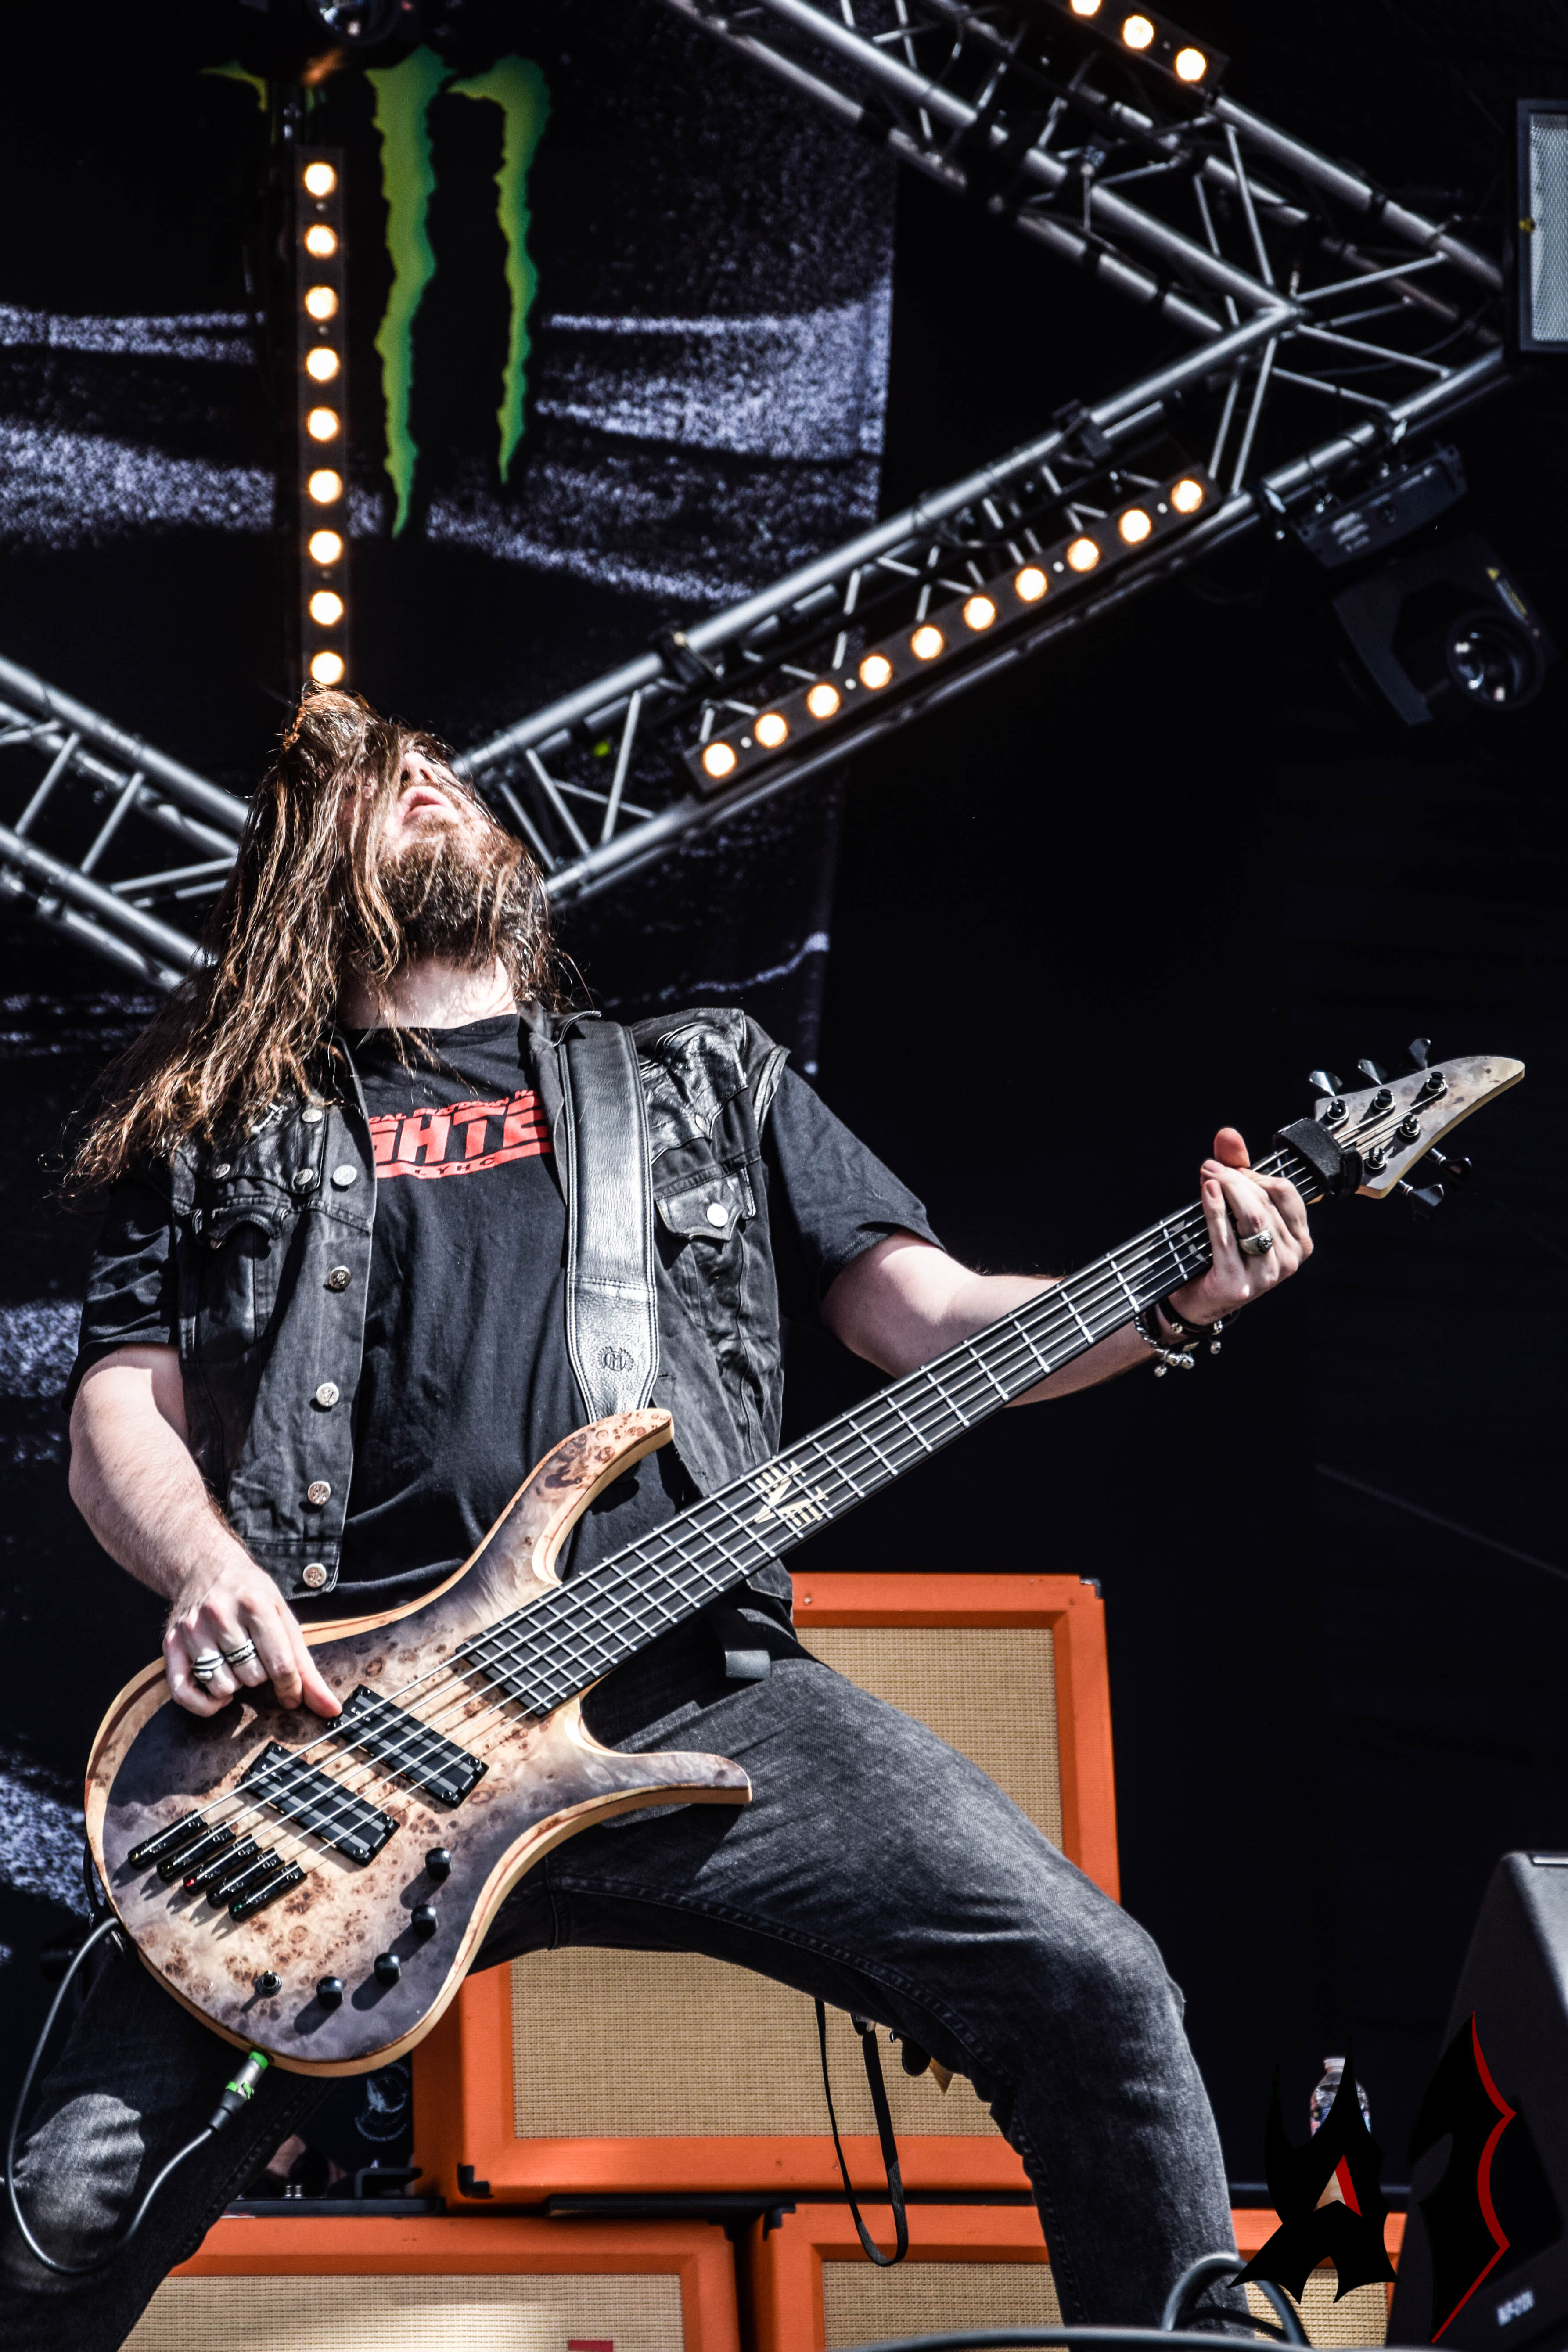 Donwload 2018 – Day 2 - Betraying The Martyrs 4